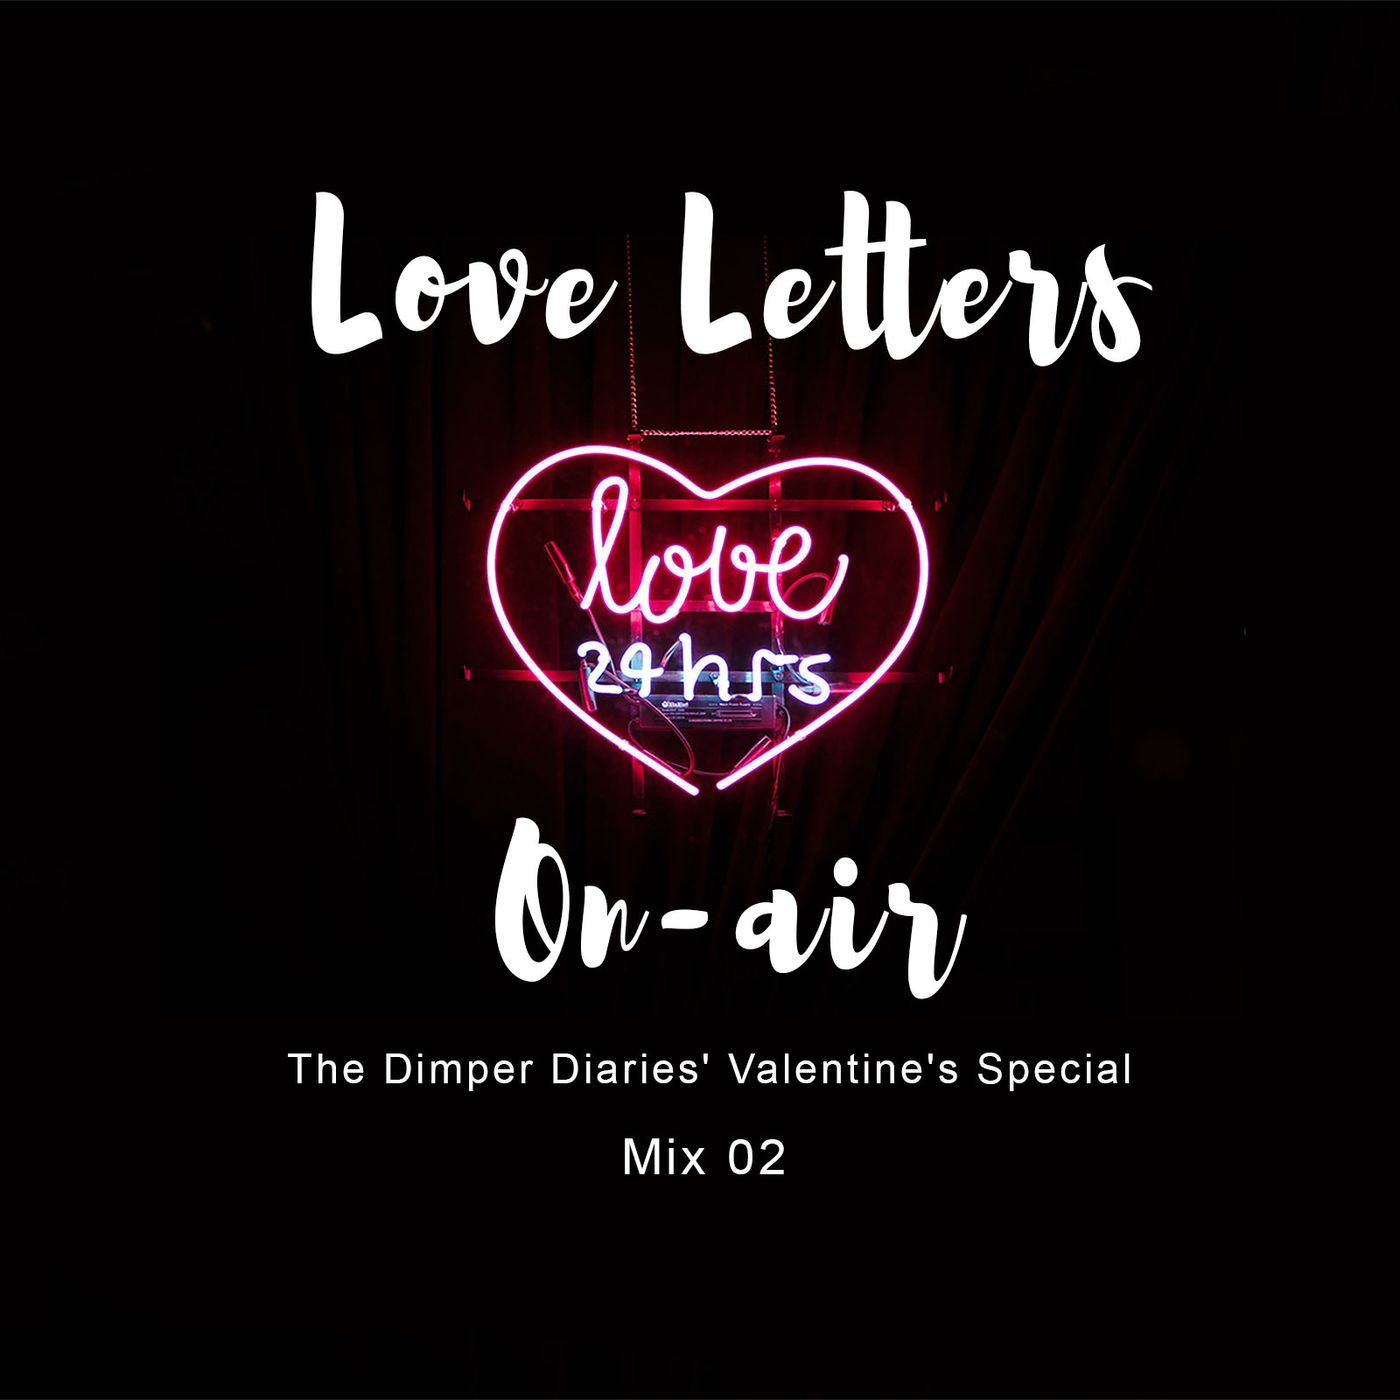 Love Letters On-air: Mix 02